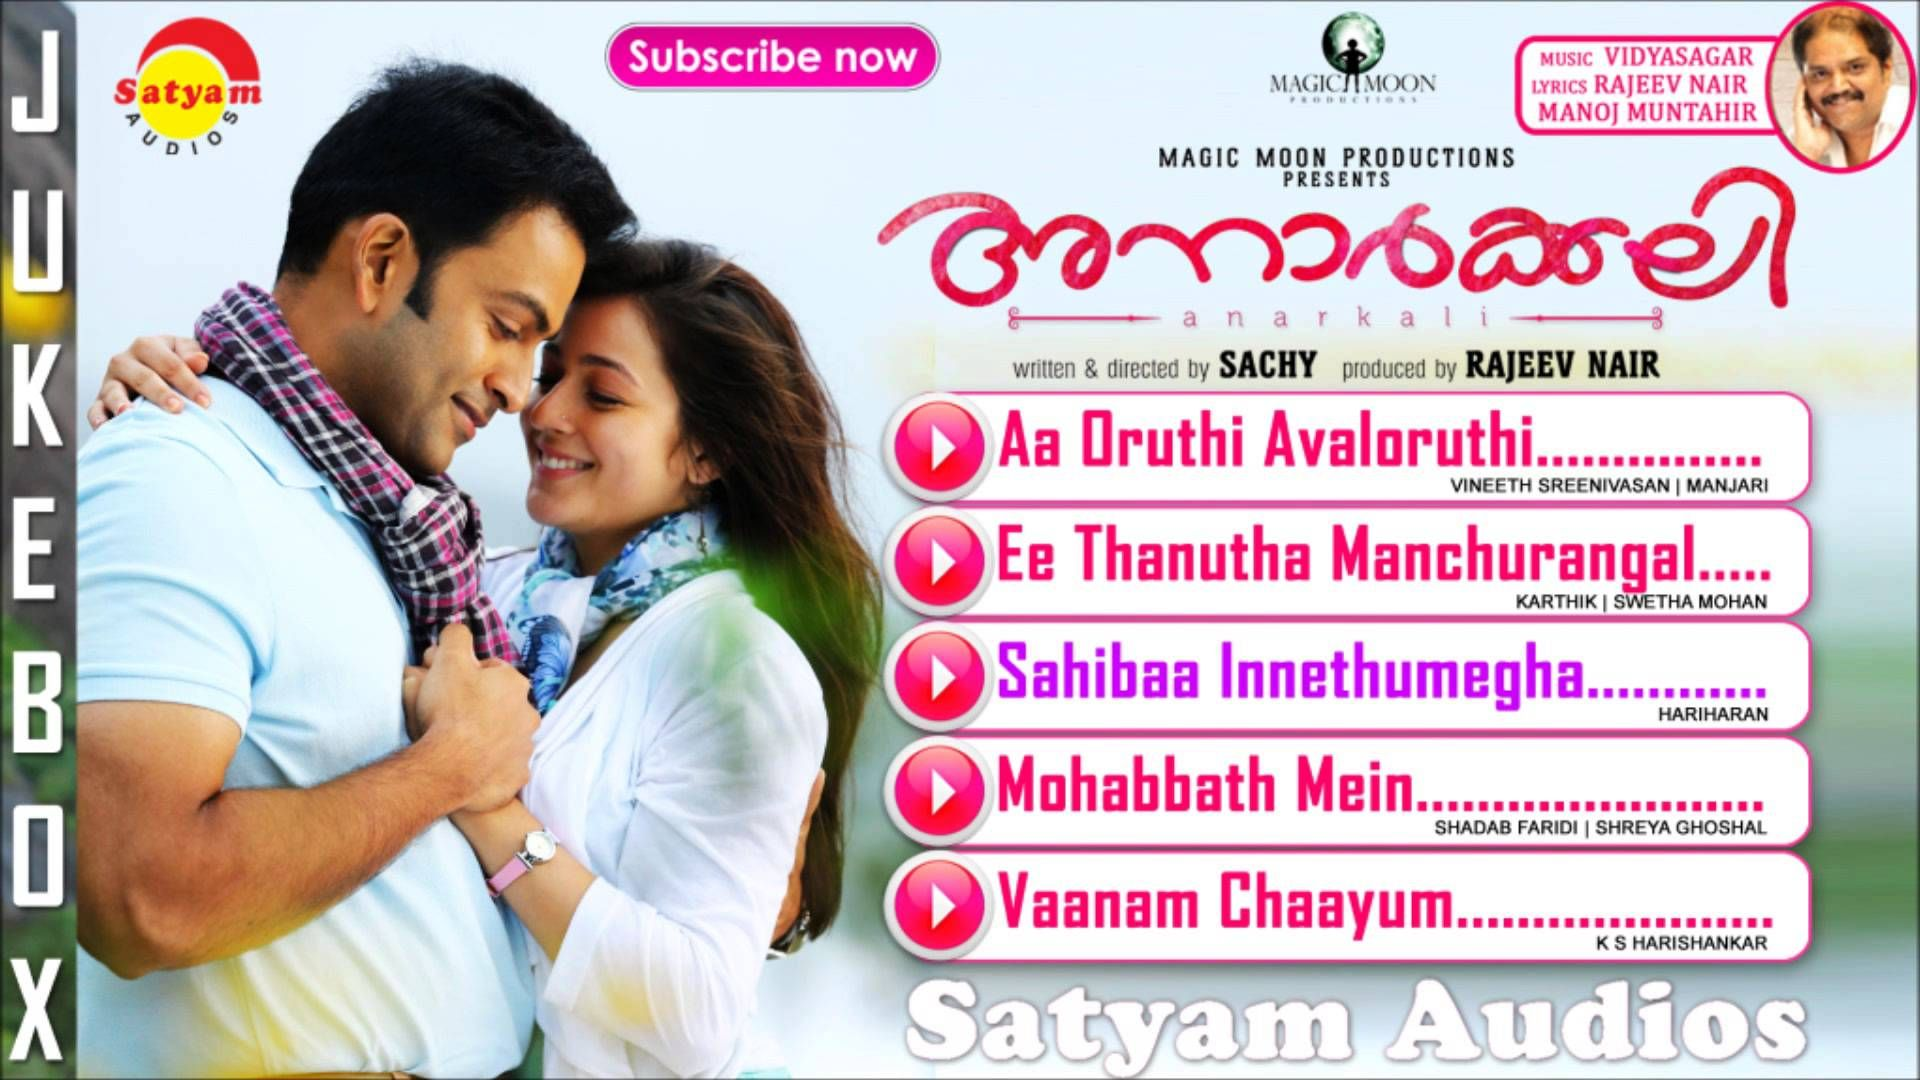 ee thanutha manchurangal mp3 song